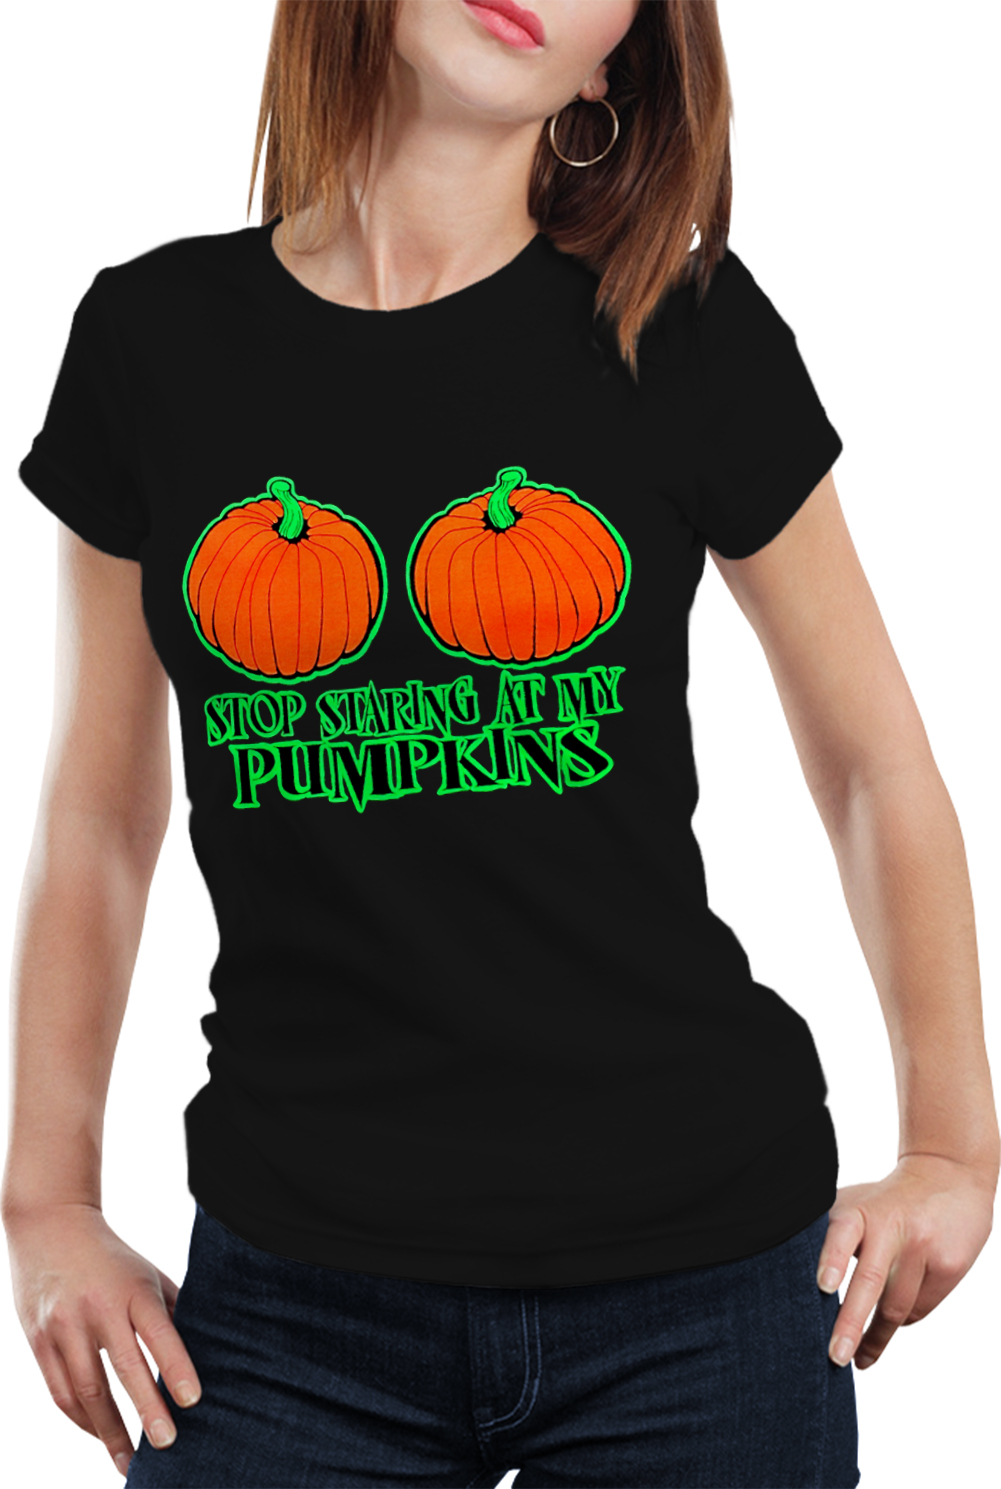 Halloween costume t shirts stop staring at my pumpkins for Costume t shirts online